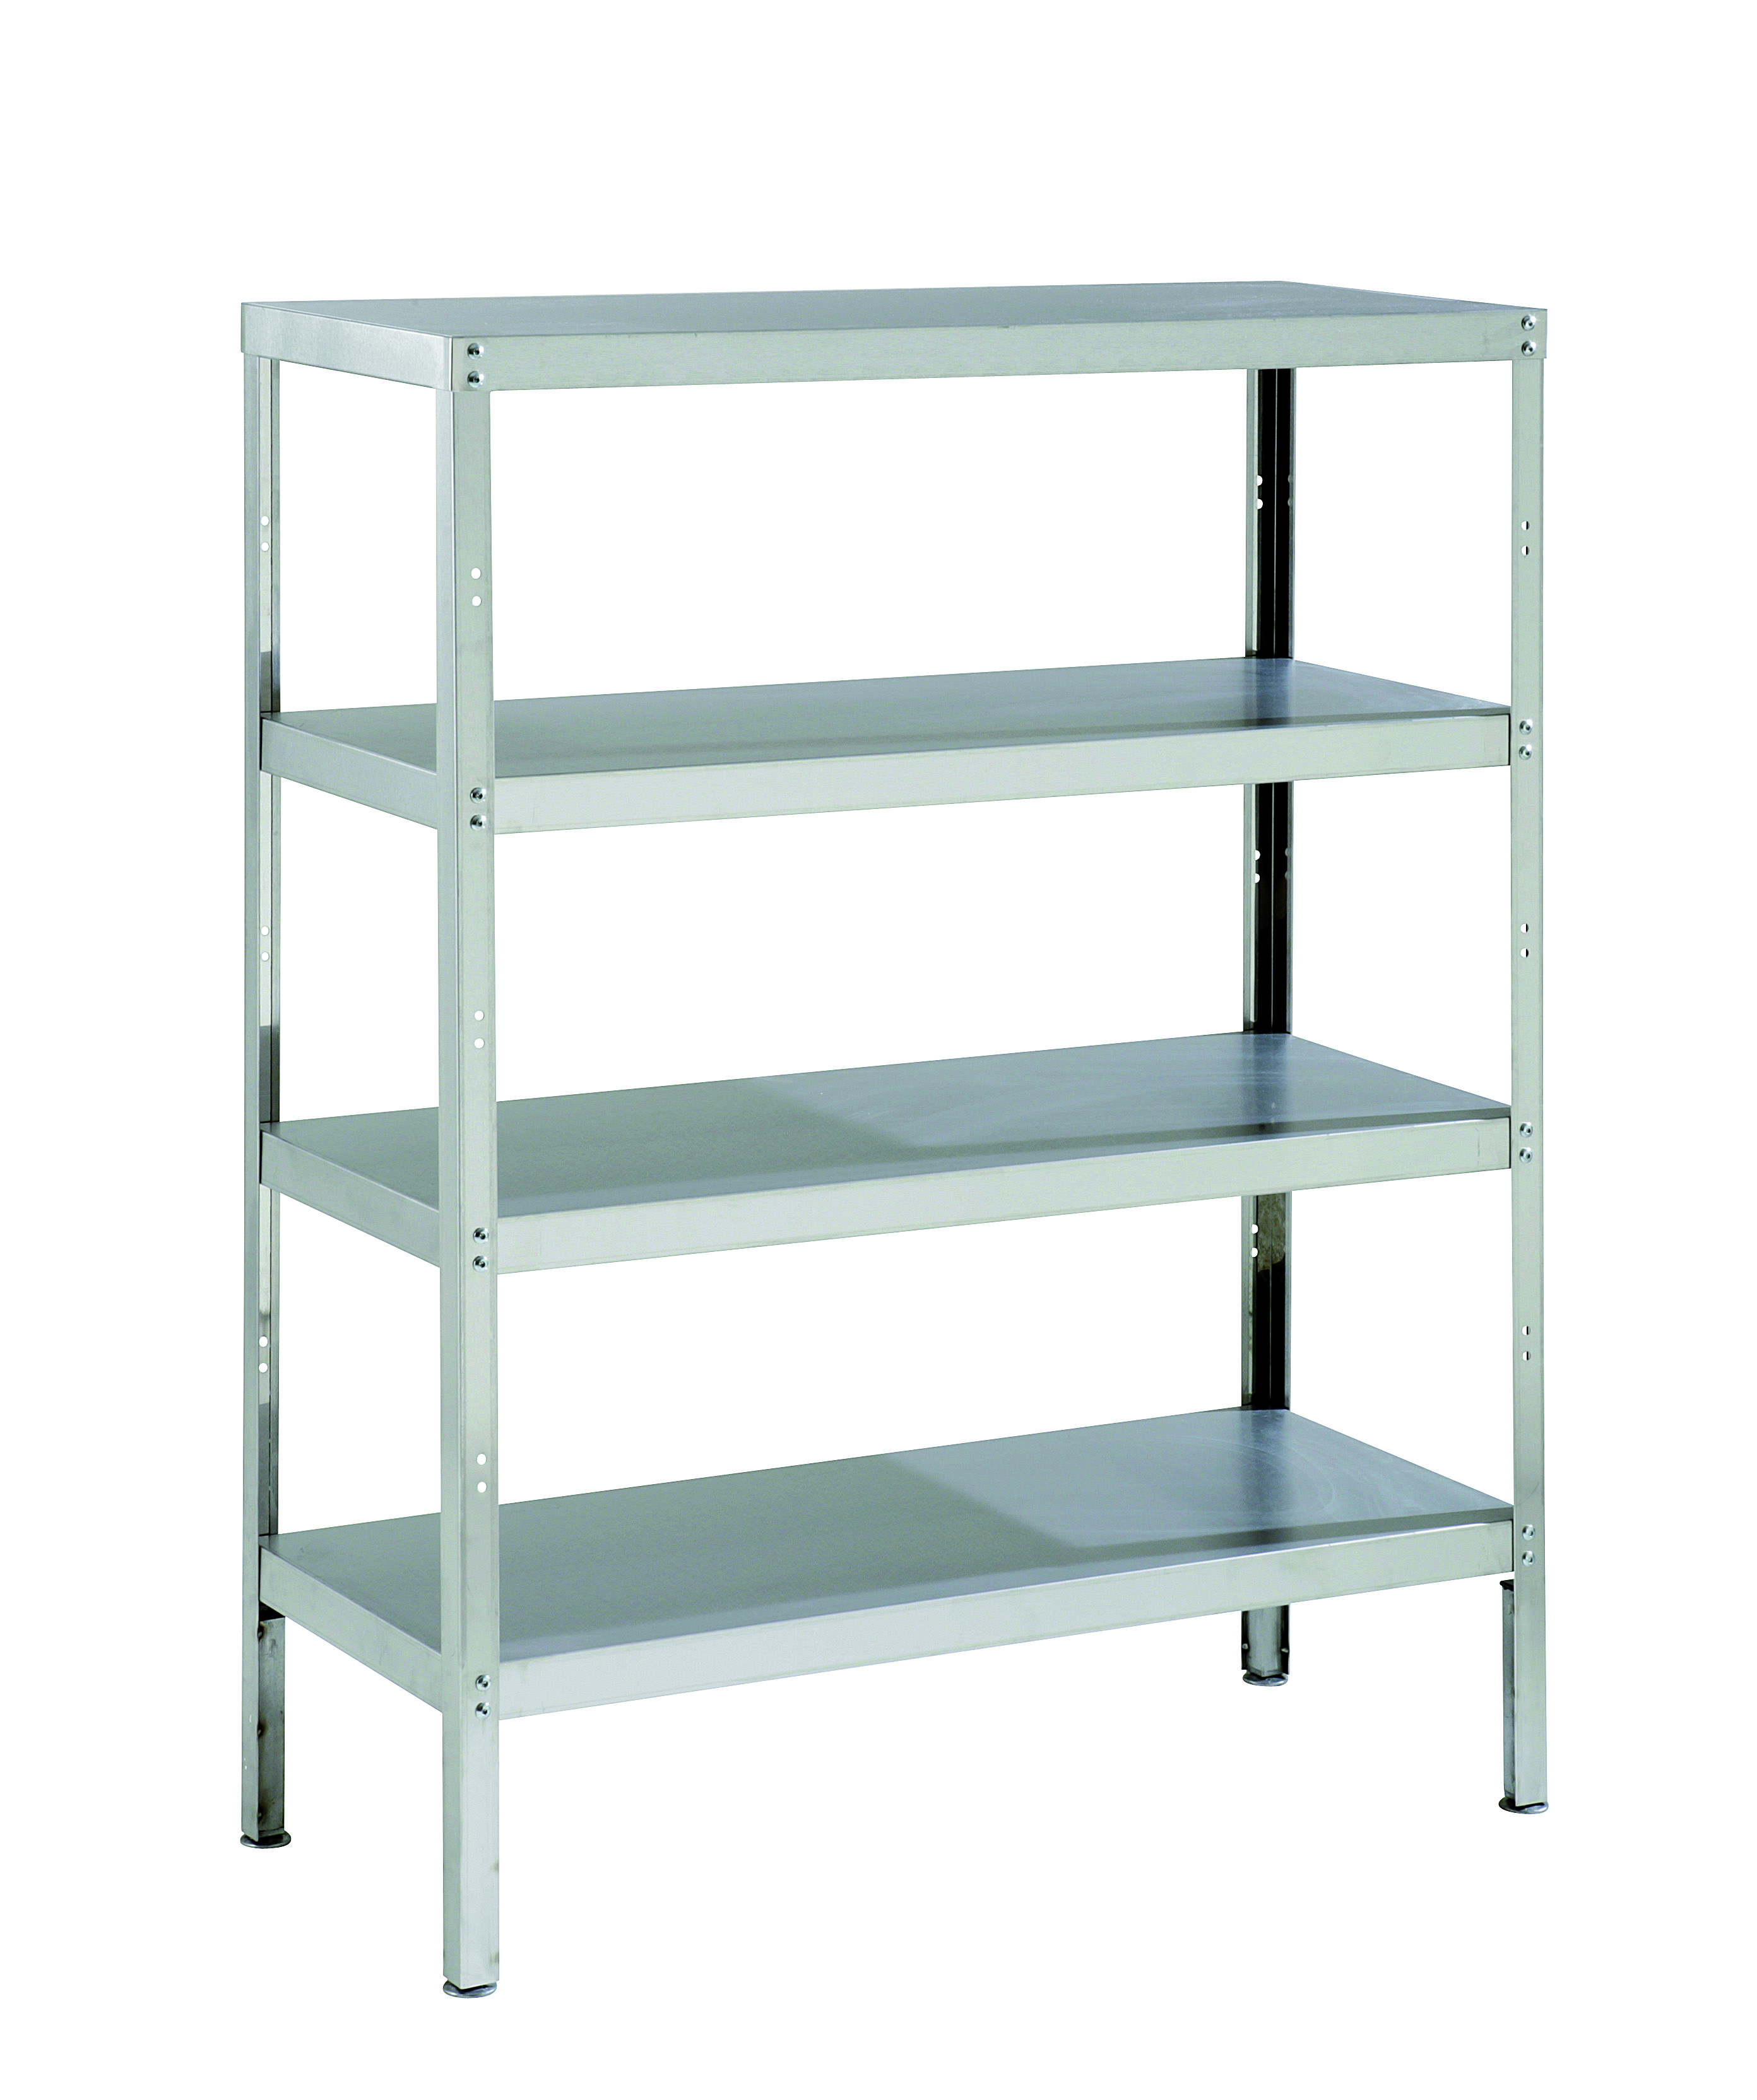 Stainless Steel Storage Rack with 4 Shelves & Adjustable Feet ...